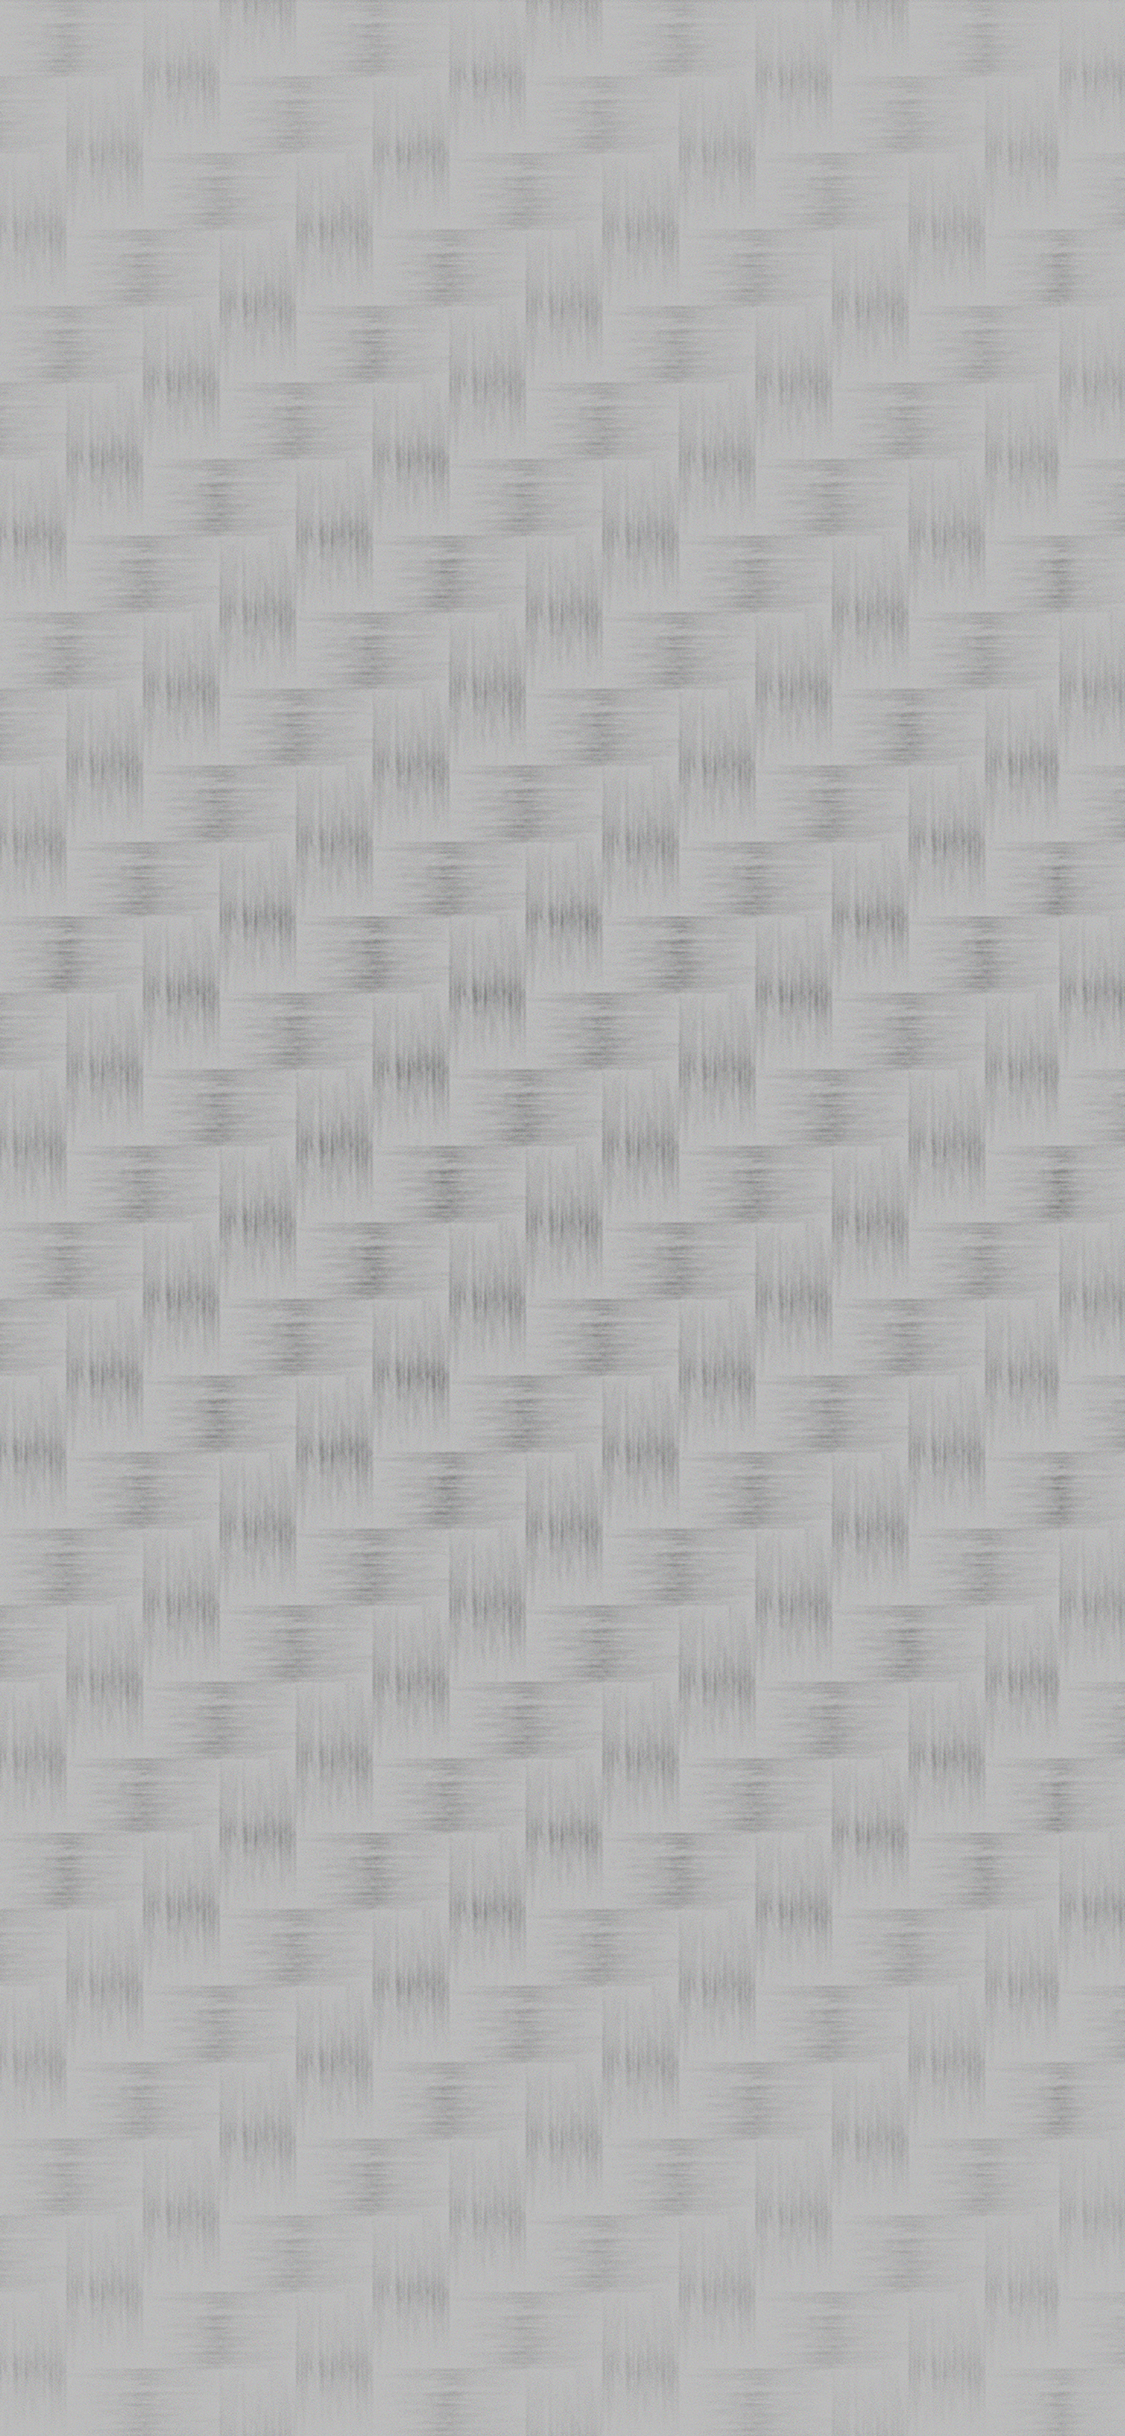 iPhoneXpapers.com-Apple-iPhone-wallpaper-ve37-cool-white-background-pattern-abstract